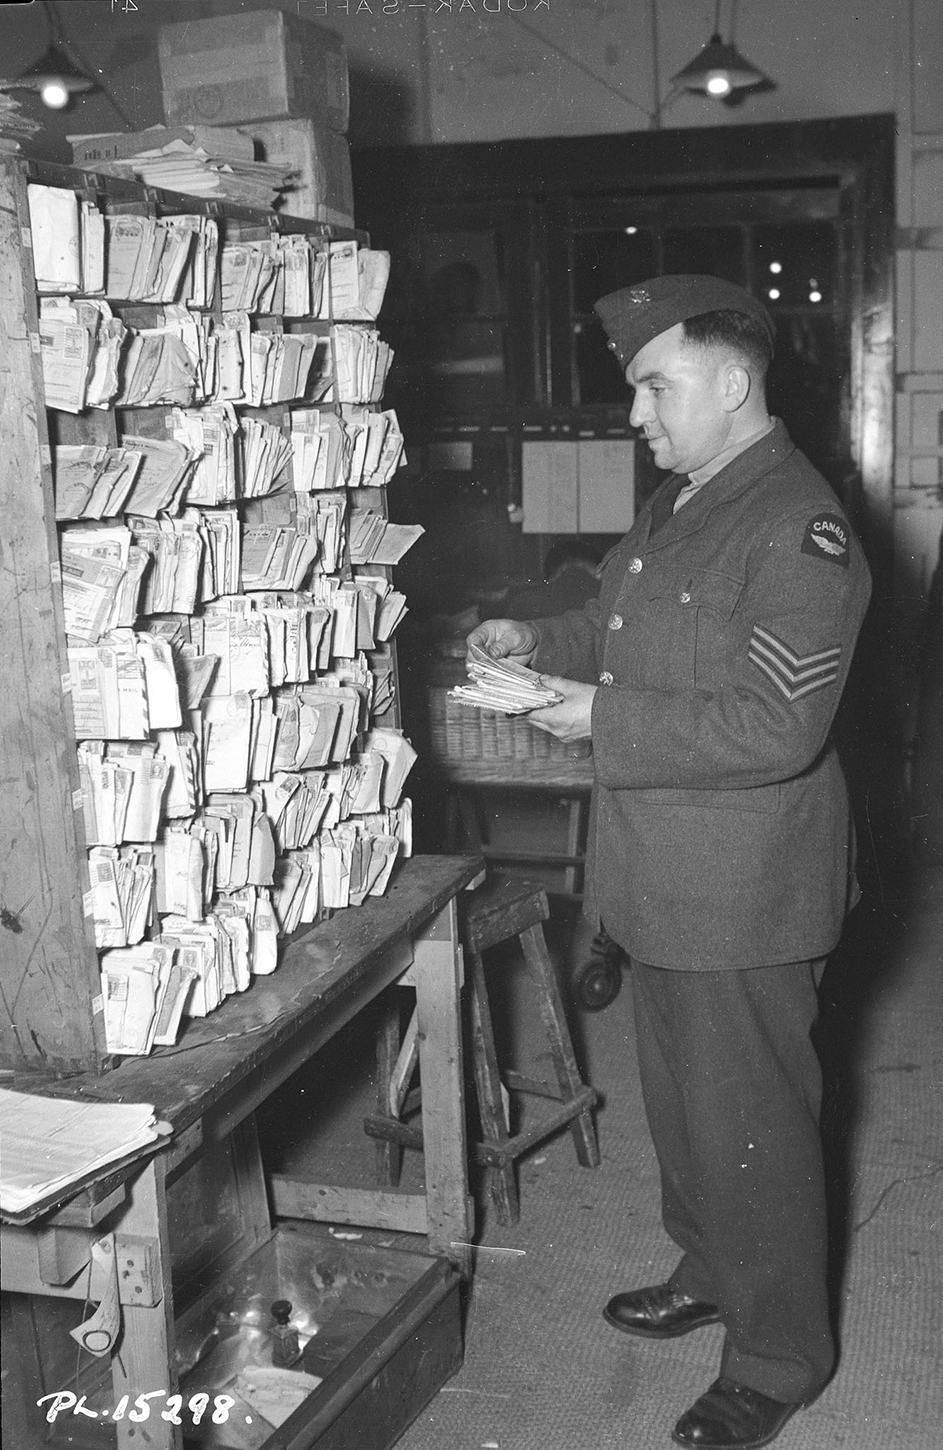 At the Base Post Office in the Midlands area of England, Sergeant Ray Meads (Toronto, Ontario) sorts misaddressed letters in alphabetical order by addressees' names. When a change-of-address card is received, he will make the change so that the letter can go out with as little additional delay as possible. PHOTO: DND Archives